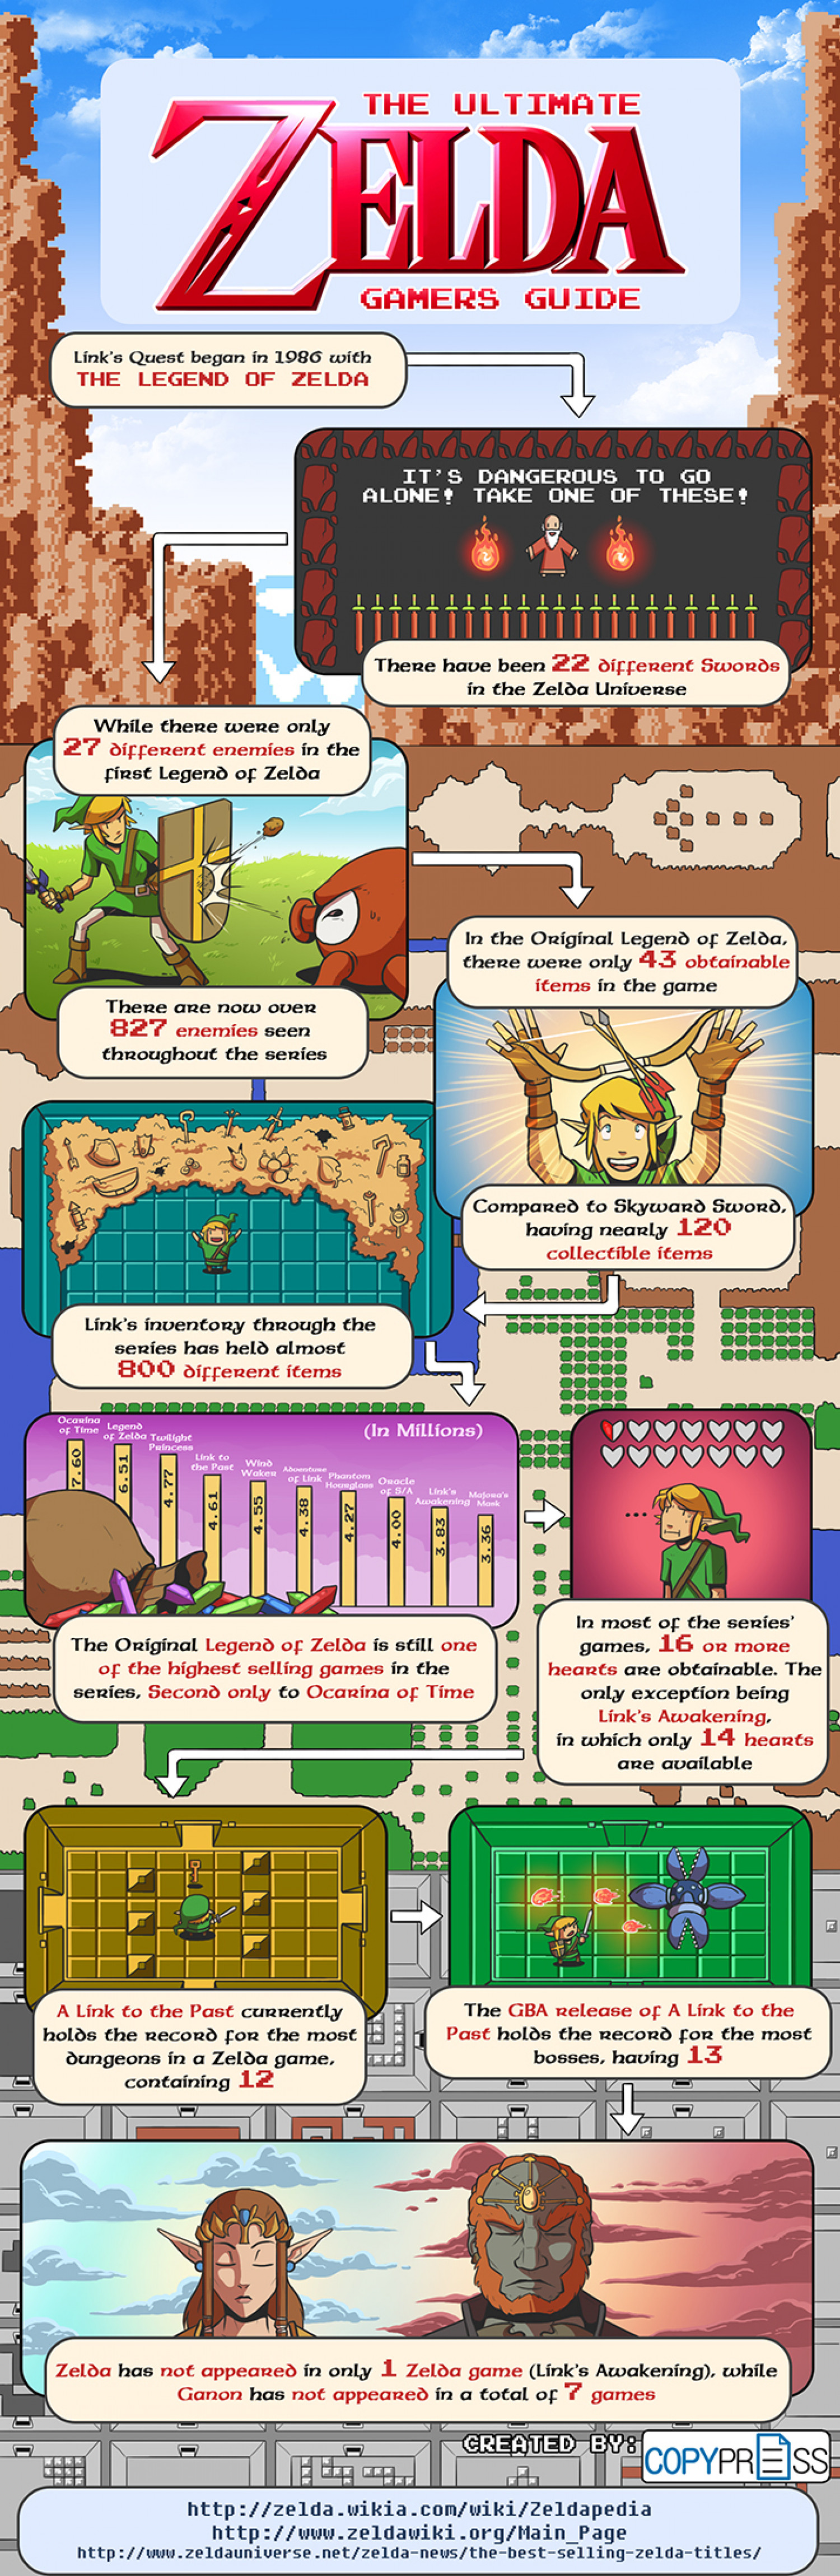 The Ultimate Zelda Gamers Guide Infographic